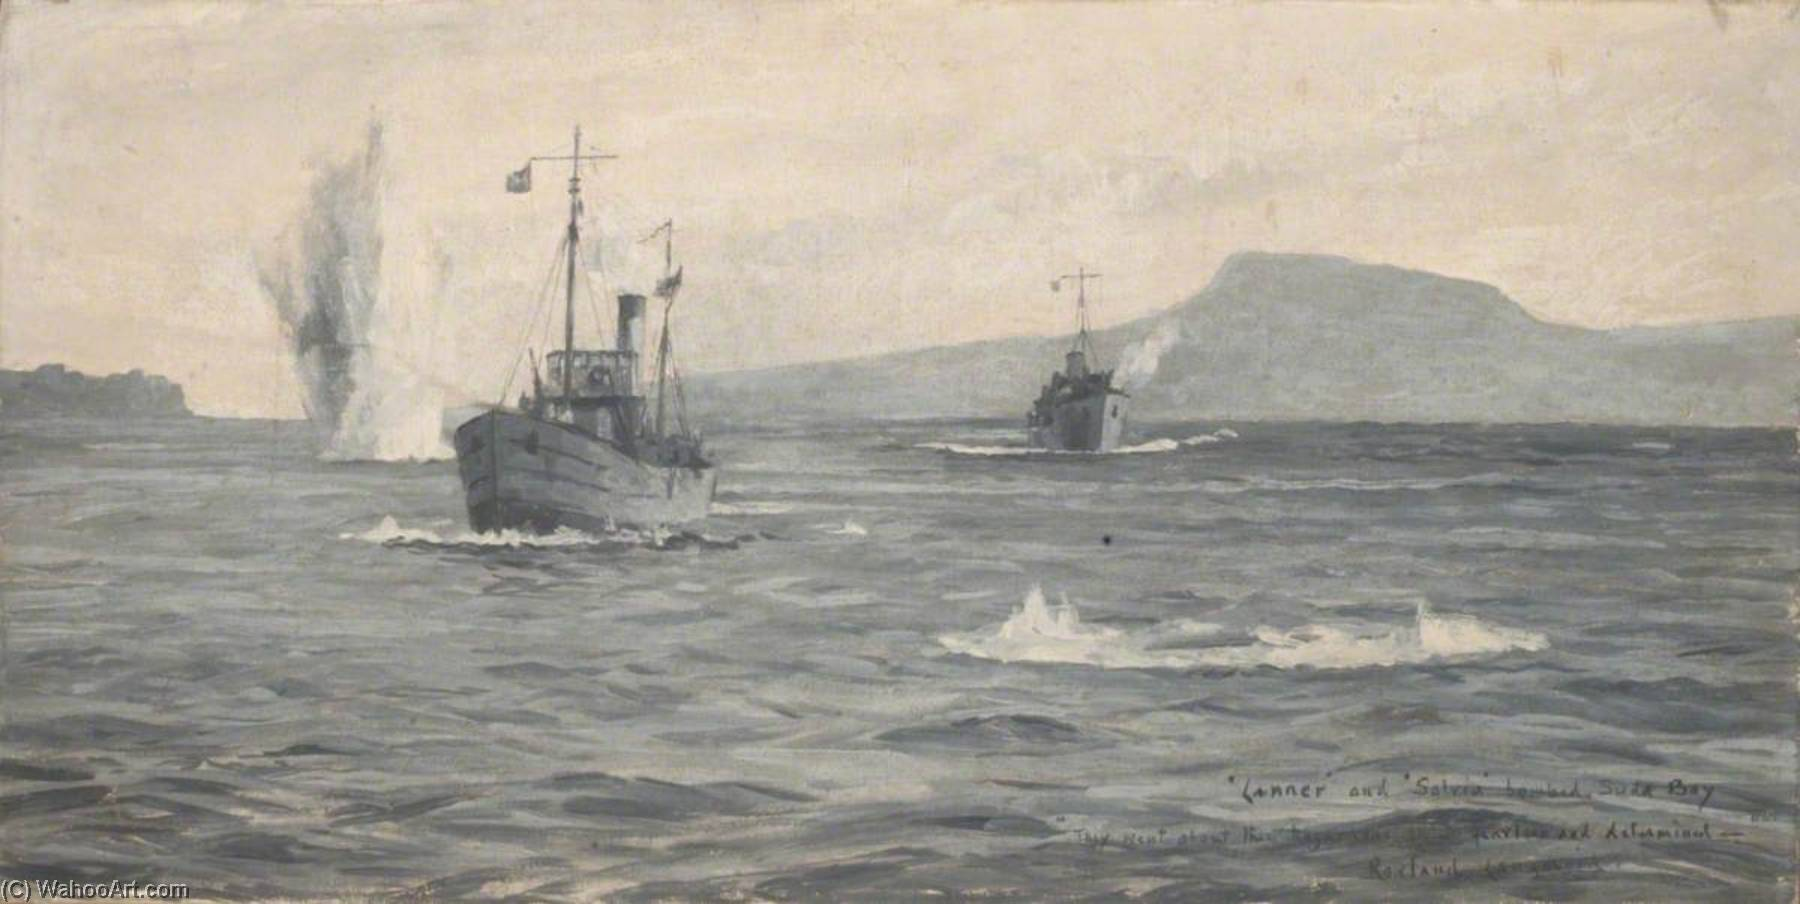 HMS` Lanner` and `Salvia` under Bomb Attack in Suda Bay, 1941 by Rowland Langmaid | Museum Quality Reproductions | WahooArt.com